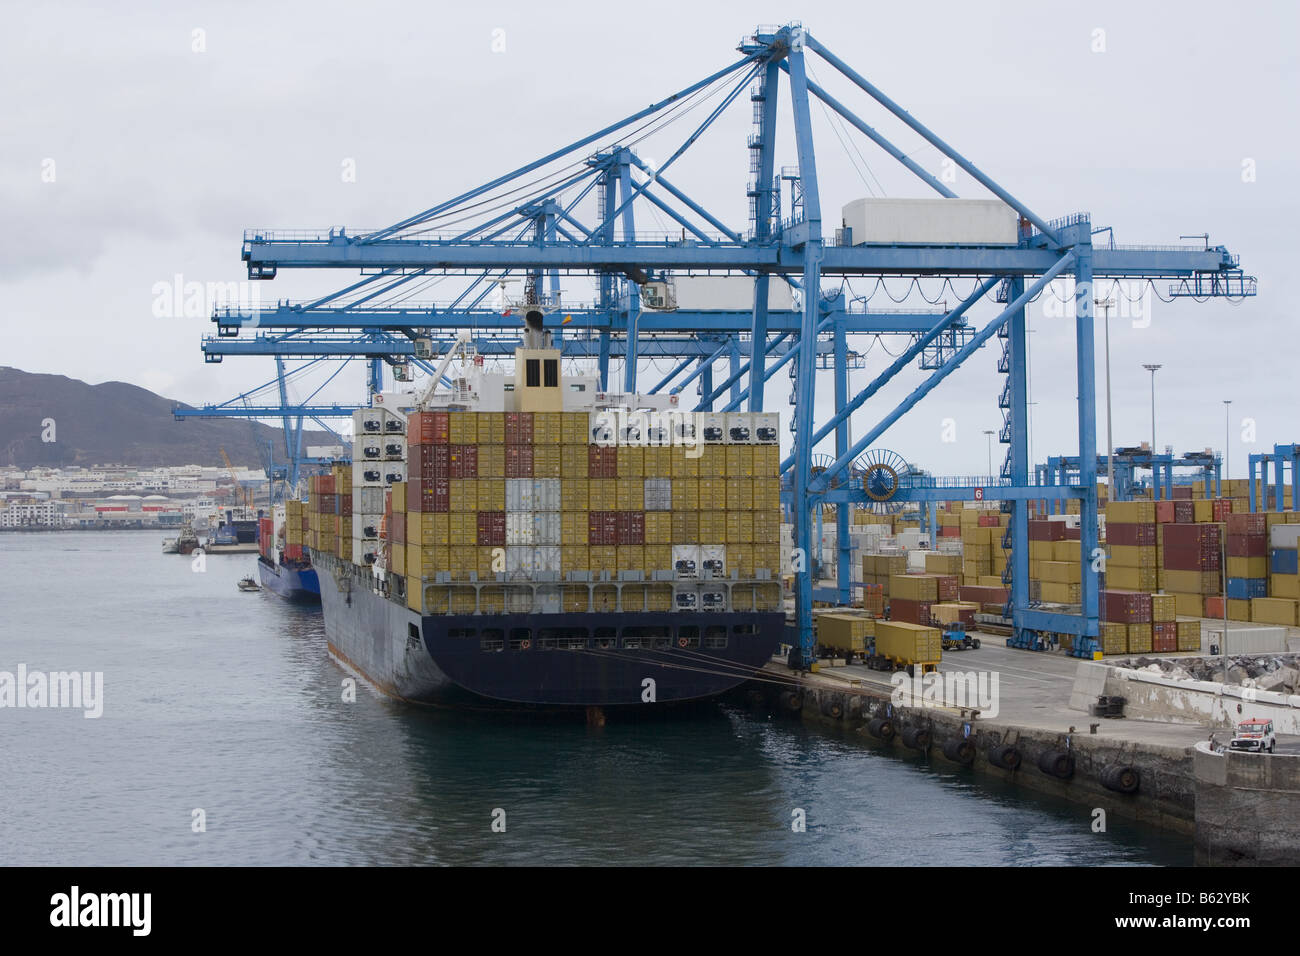 Bulk container ship in port  All names and logos have been